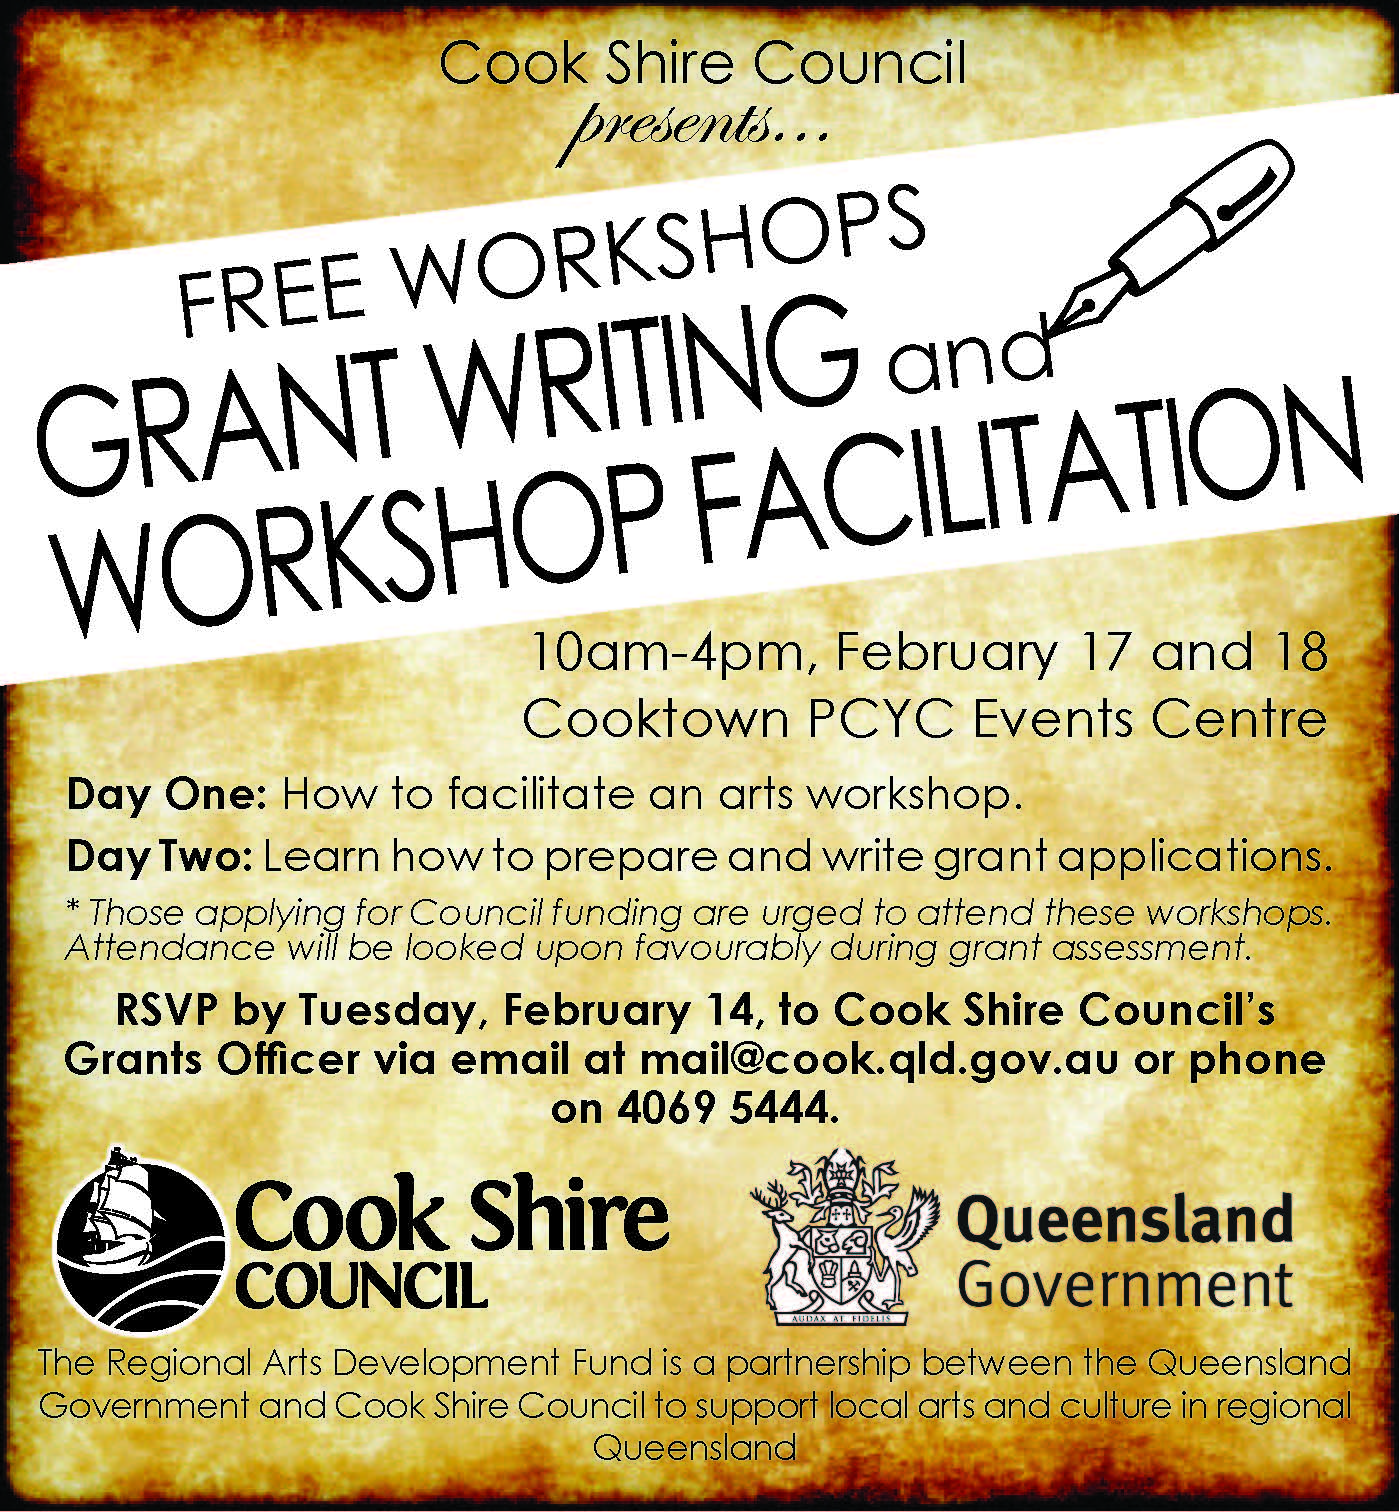 Grant writing and event facilitation workshops